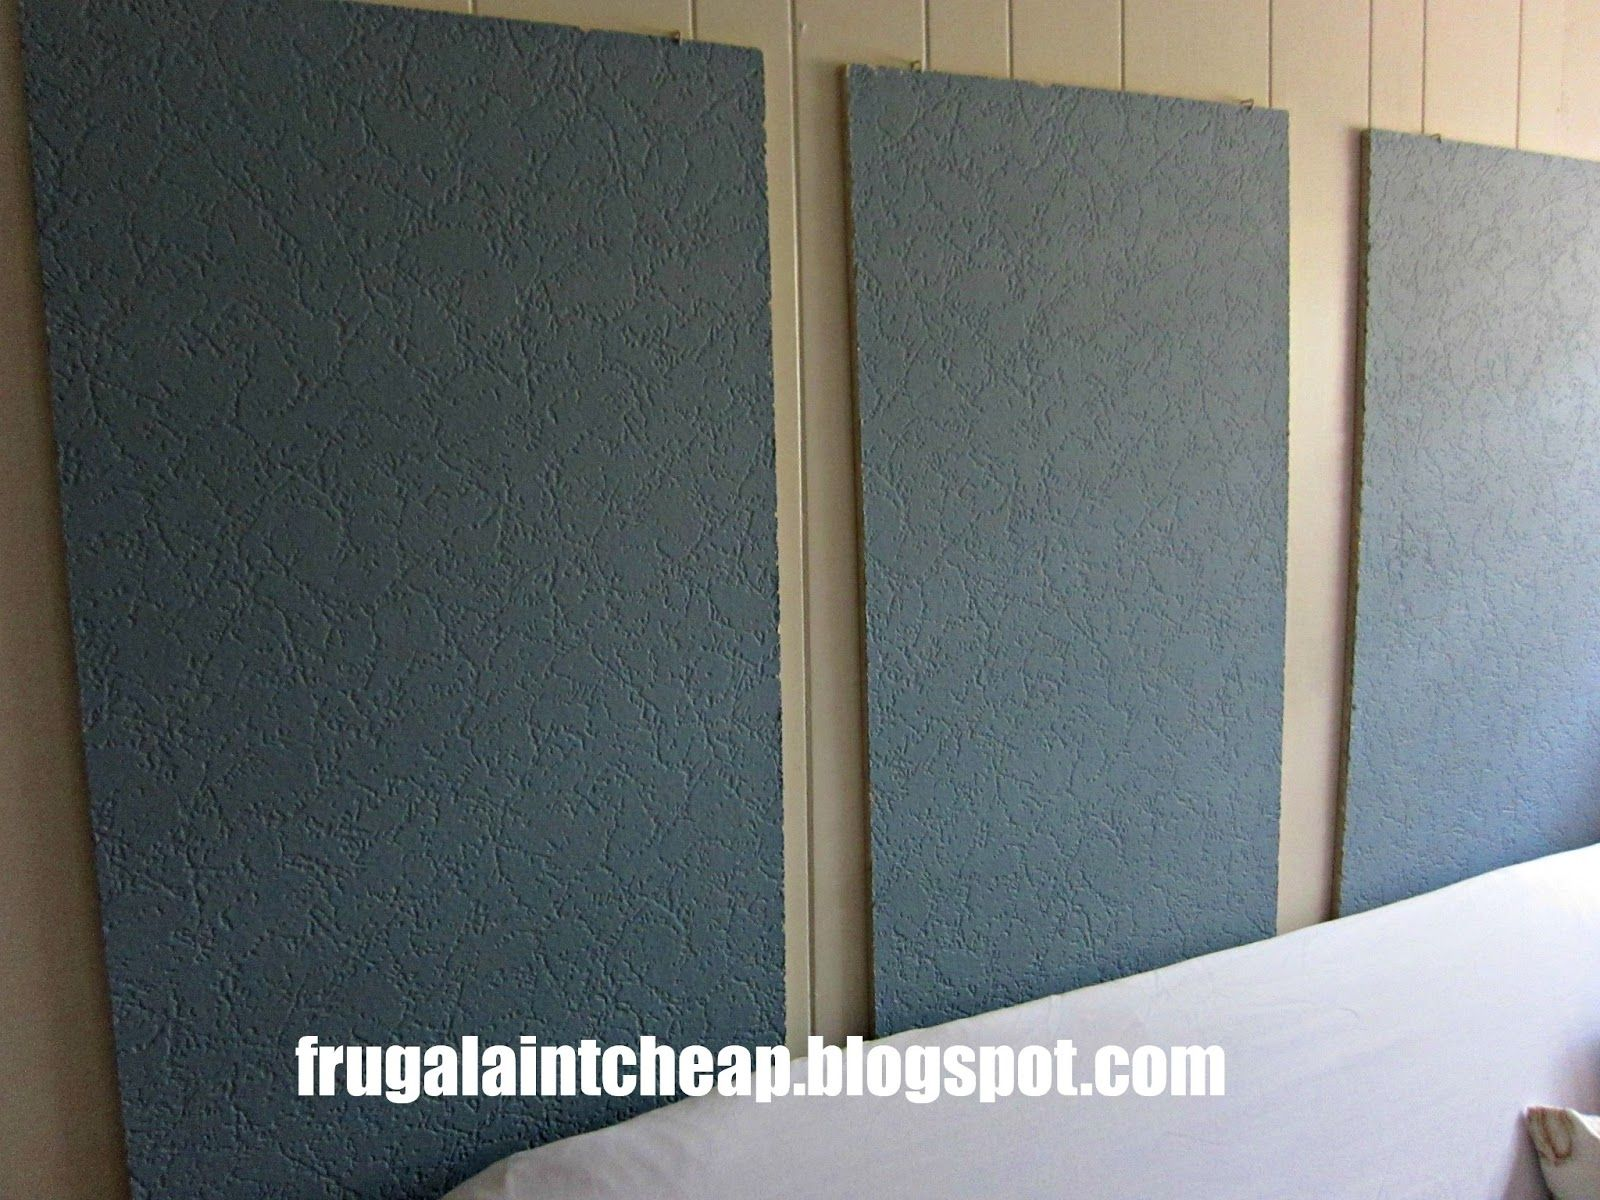 Frugal Ainu0027t Cheap: Soundproofing A Room (basement, Music Room, Gym, Office,  Theater Room.